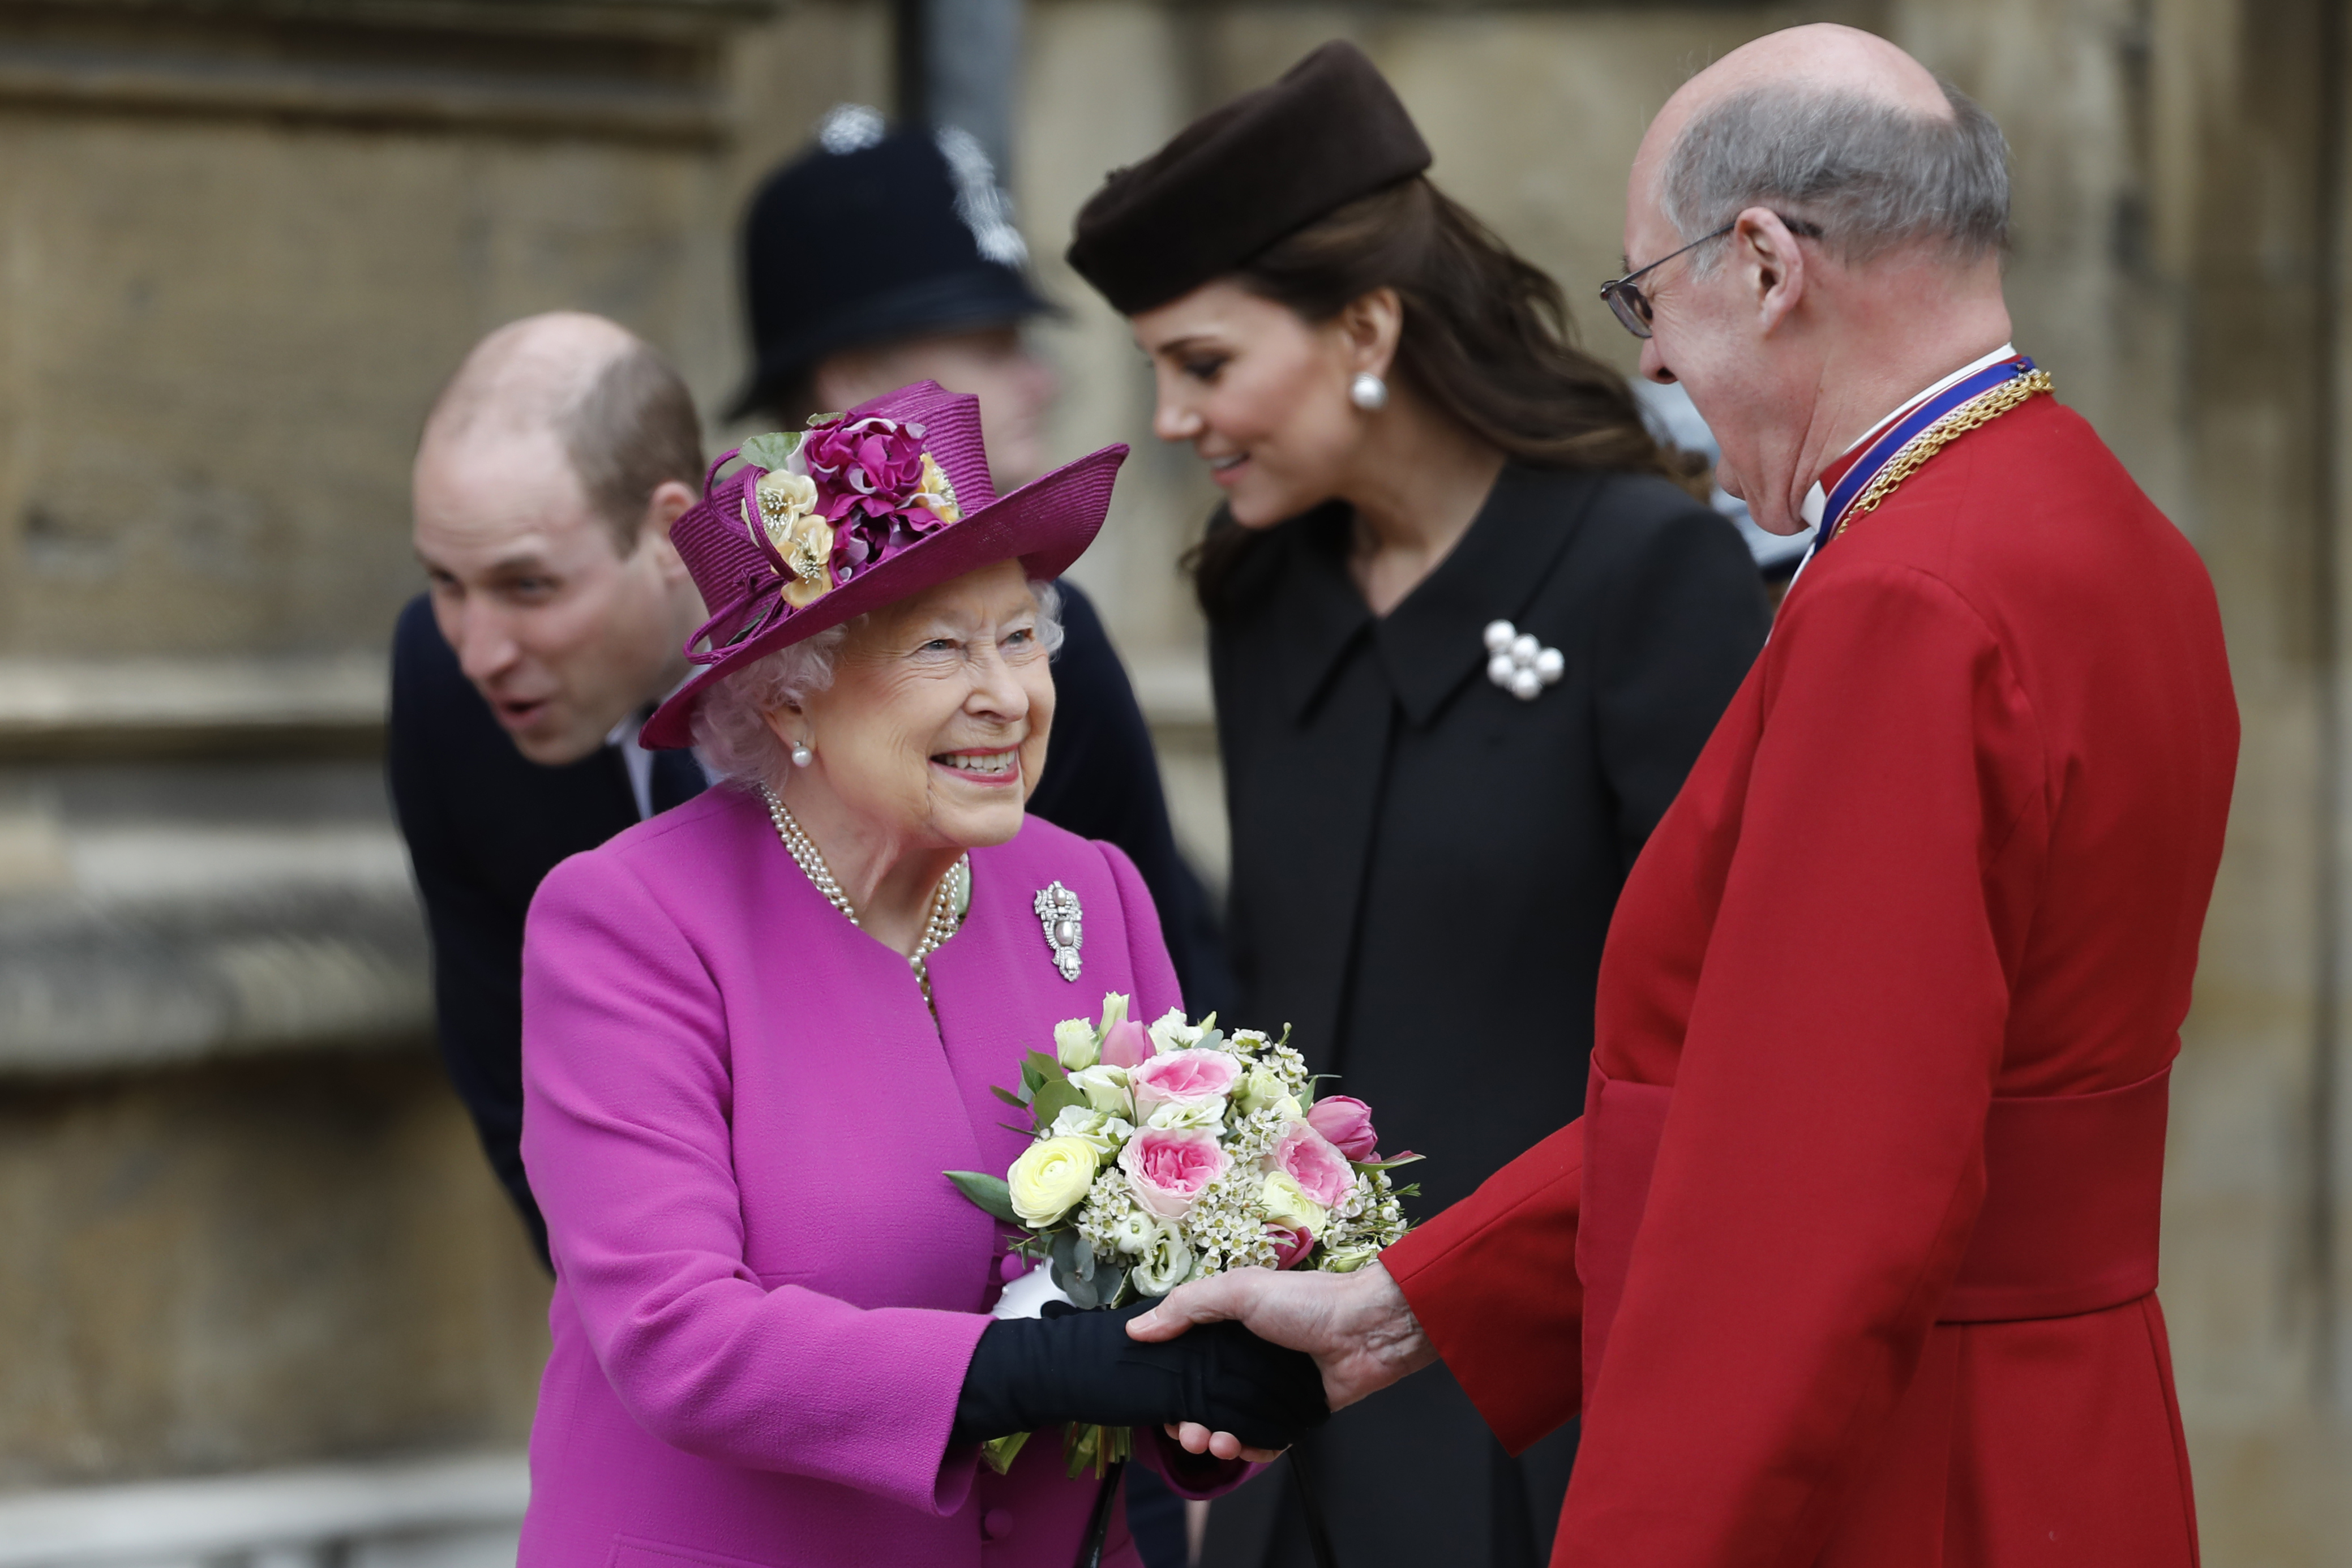 Queen Elizabeth Arrives at Chapel for Easter Service on her 93rd Birthday